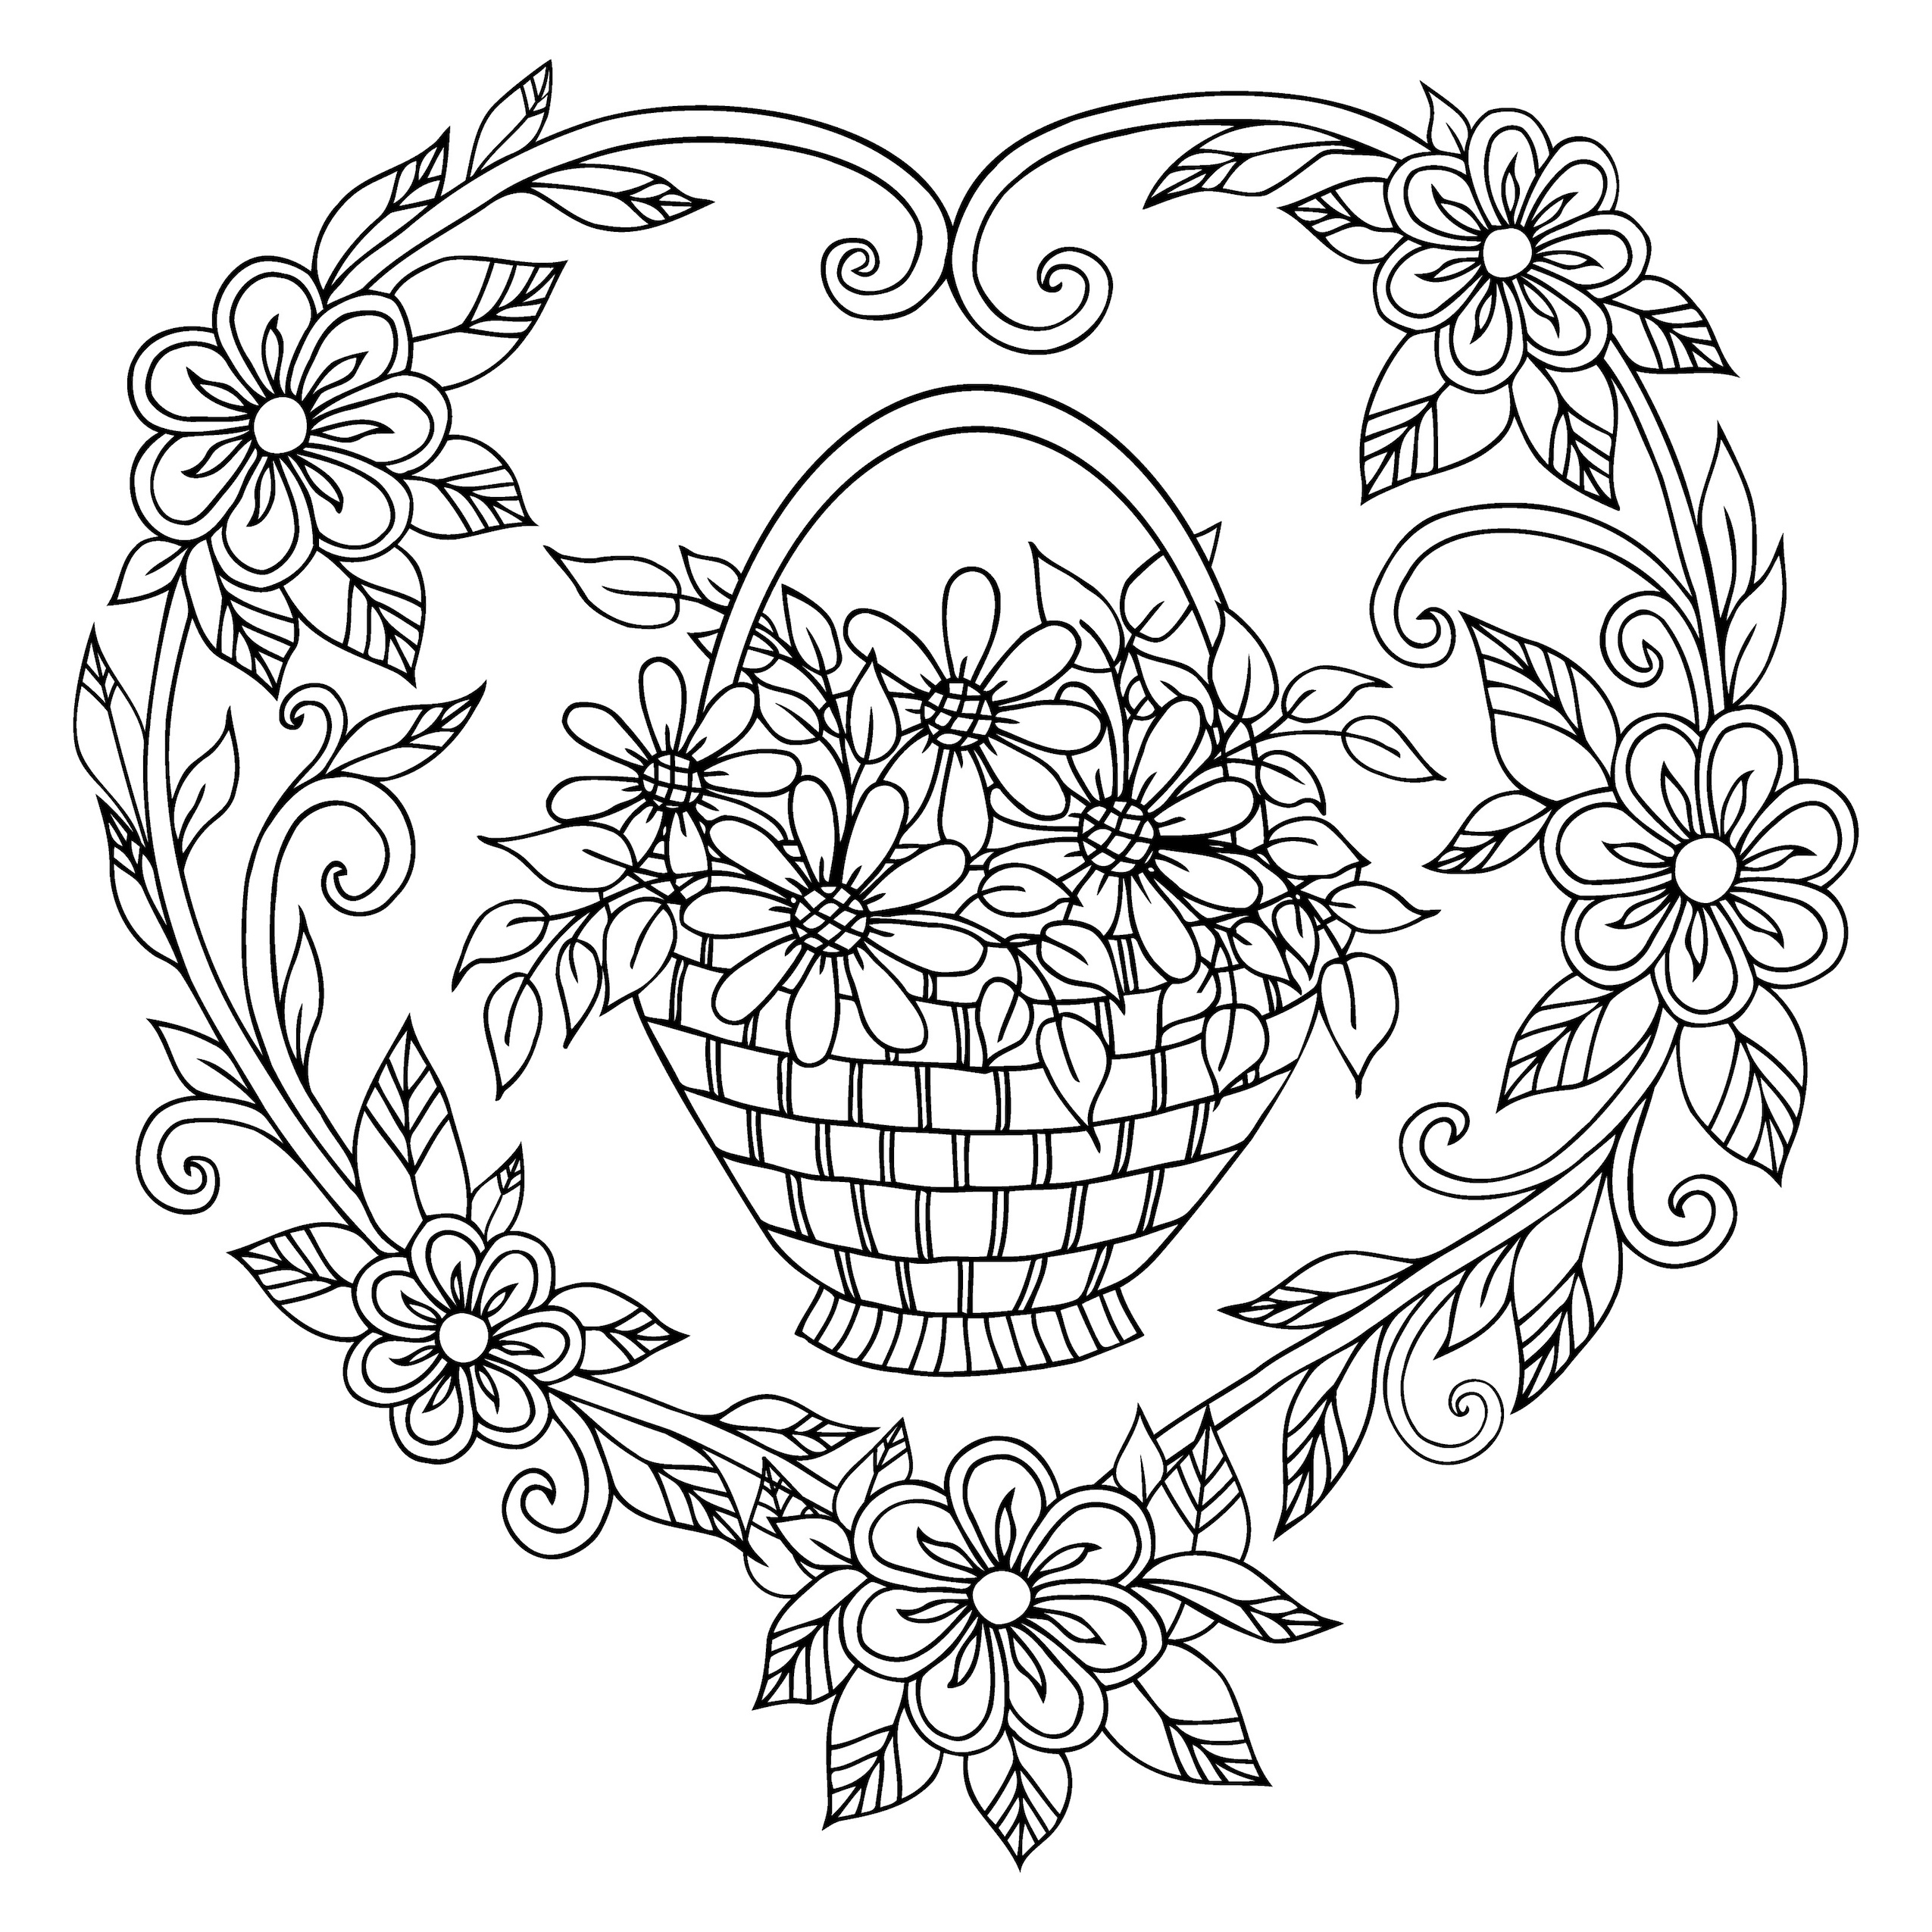 Illustration. Basket with flowers in a frame of hearts